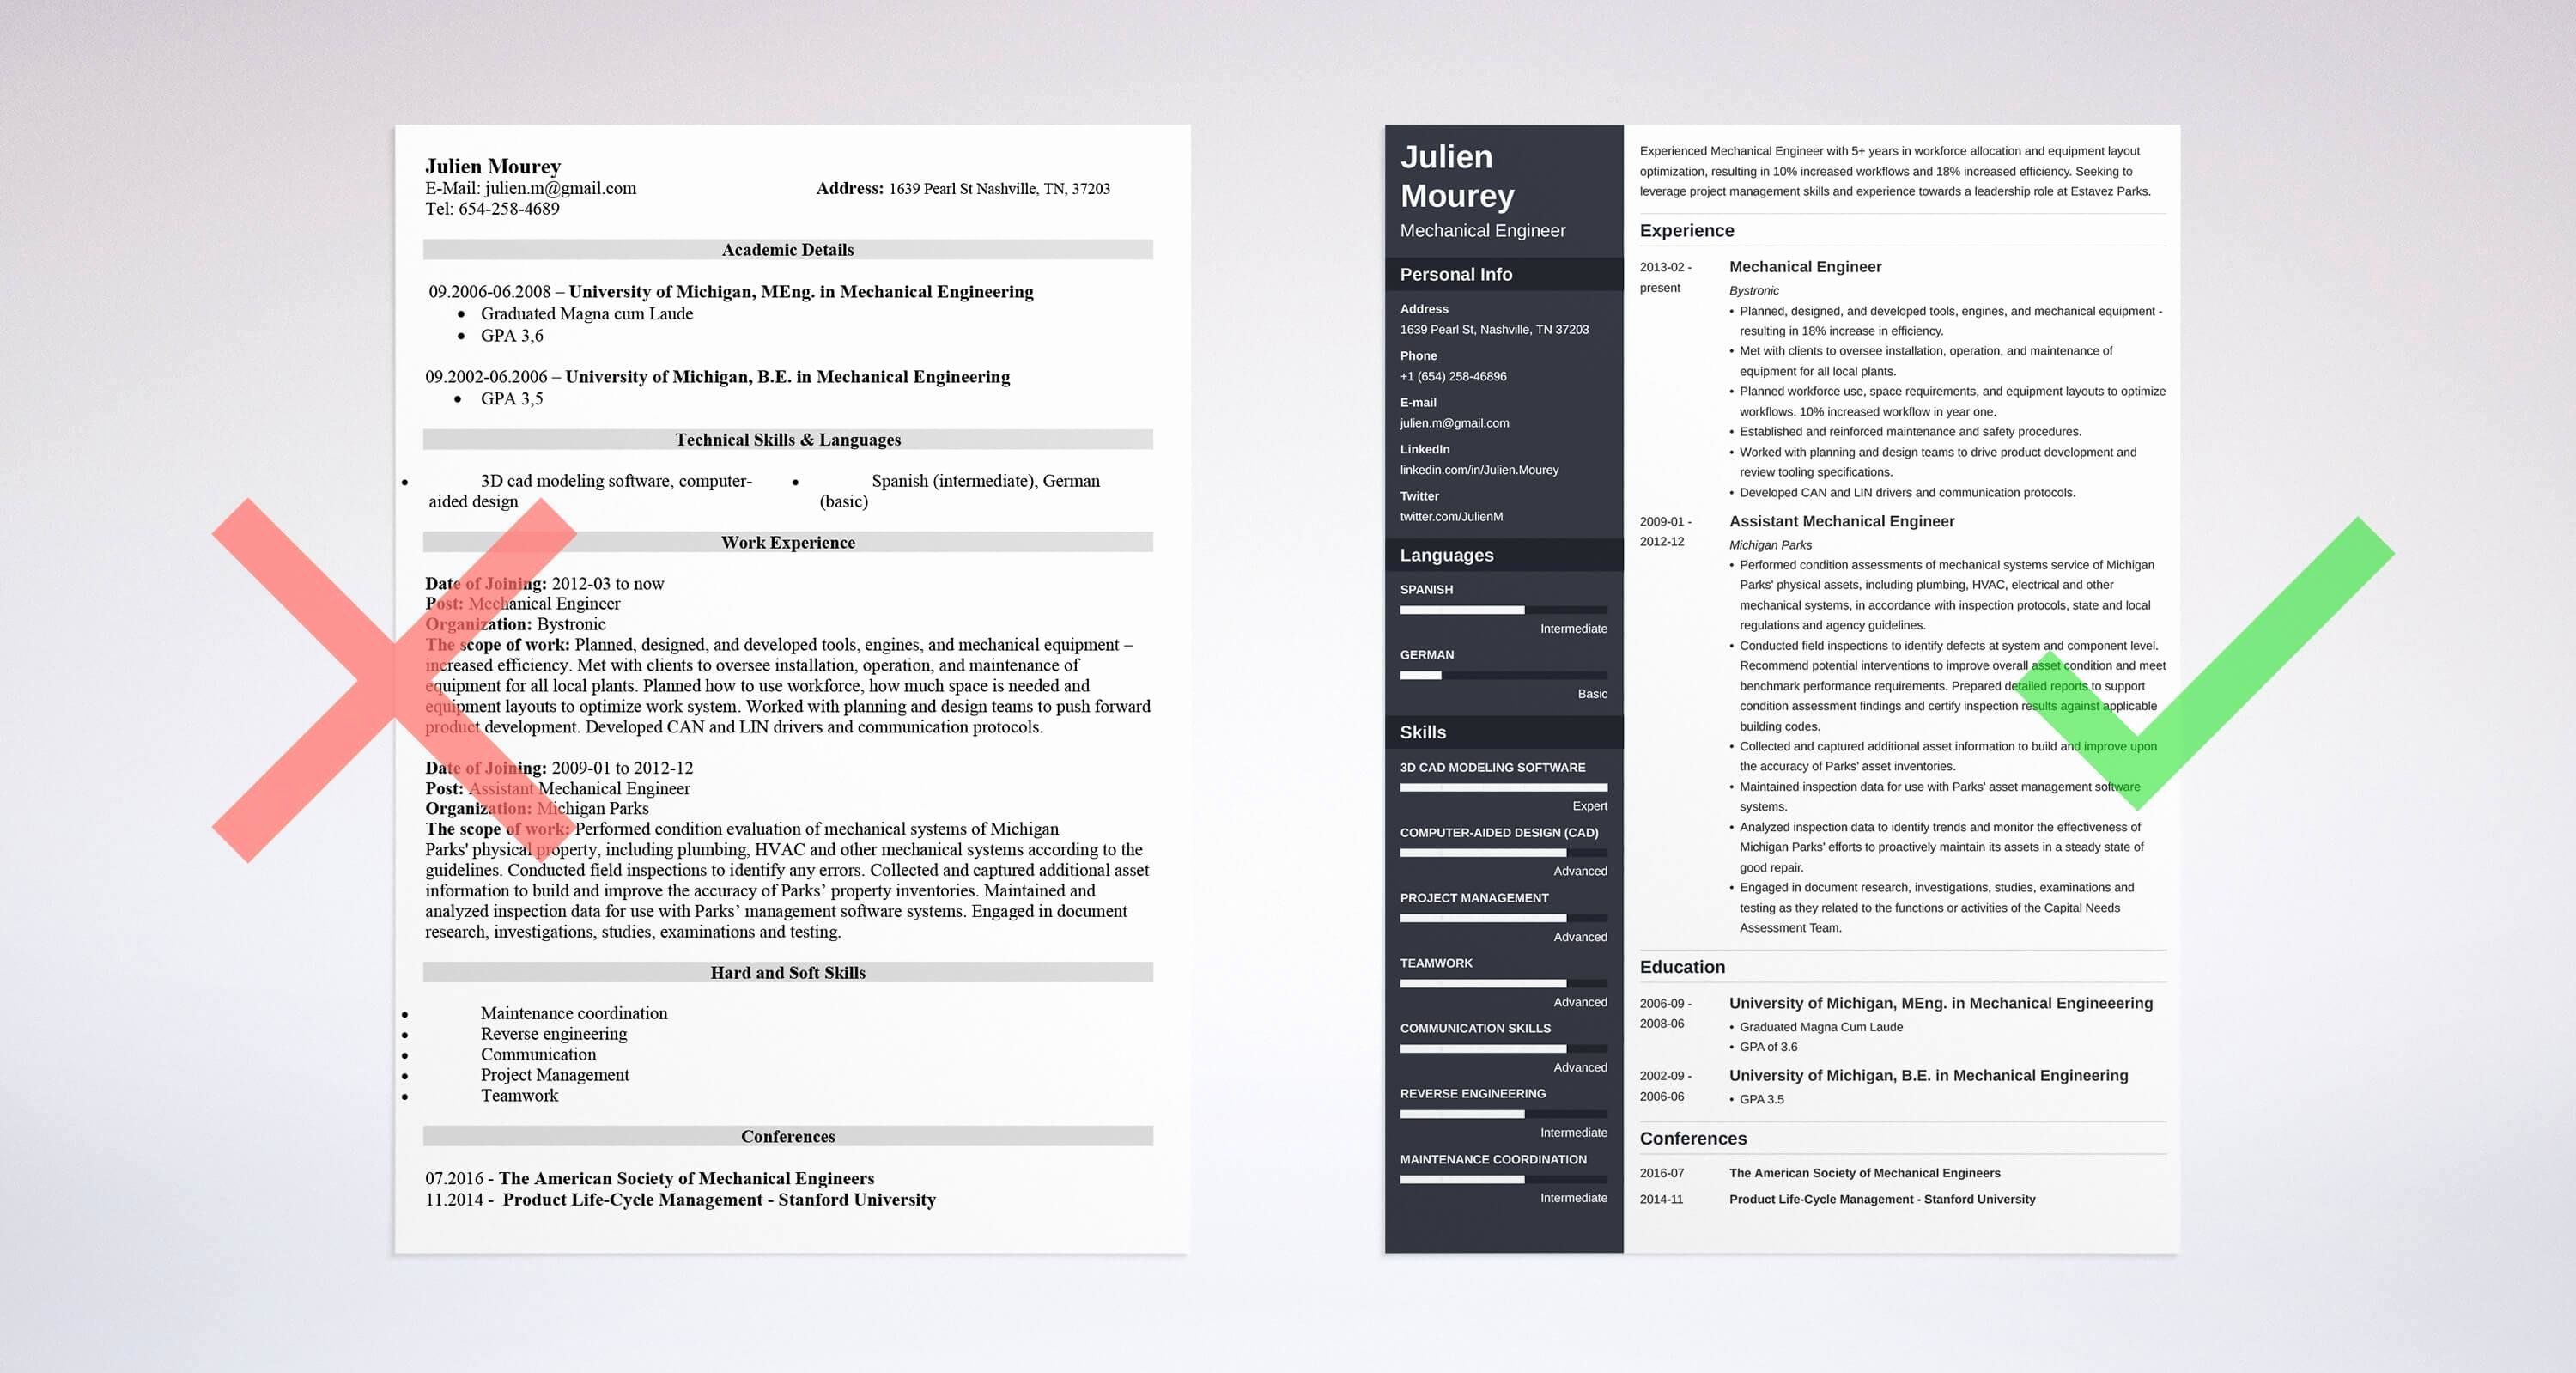 Mechanical Engineer Resume Sample Best Of Mechanical Engineering Resume Sample & Guide [20 Examples]